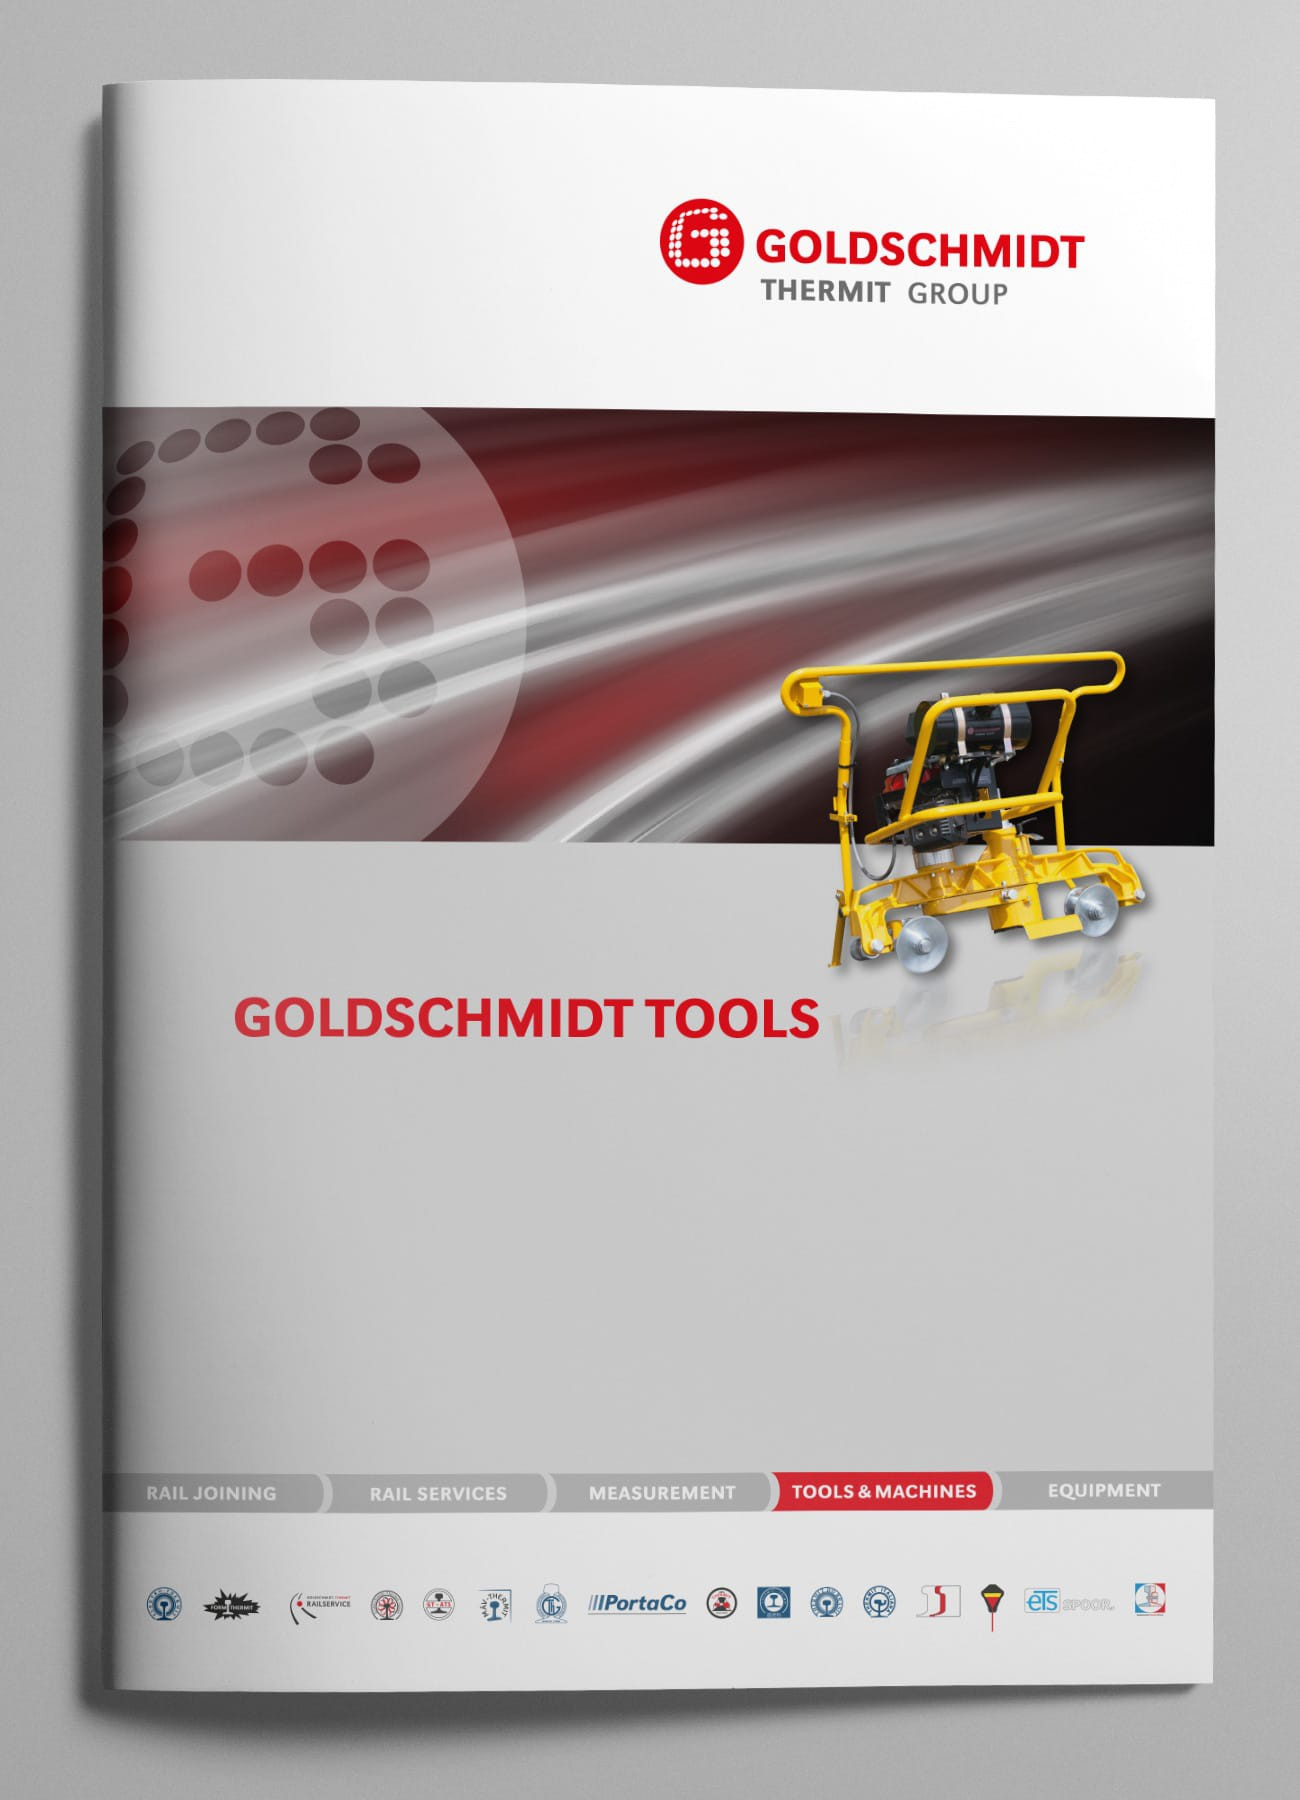 Referenzbild Goldschmidt Thermit Group